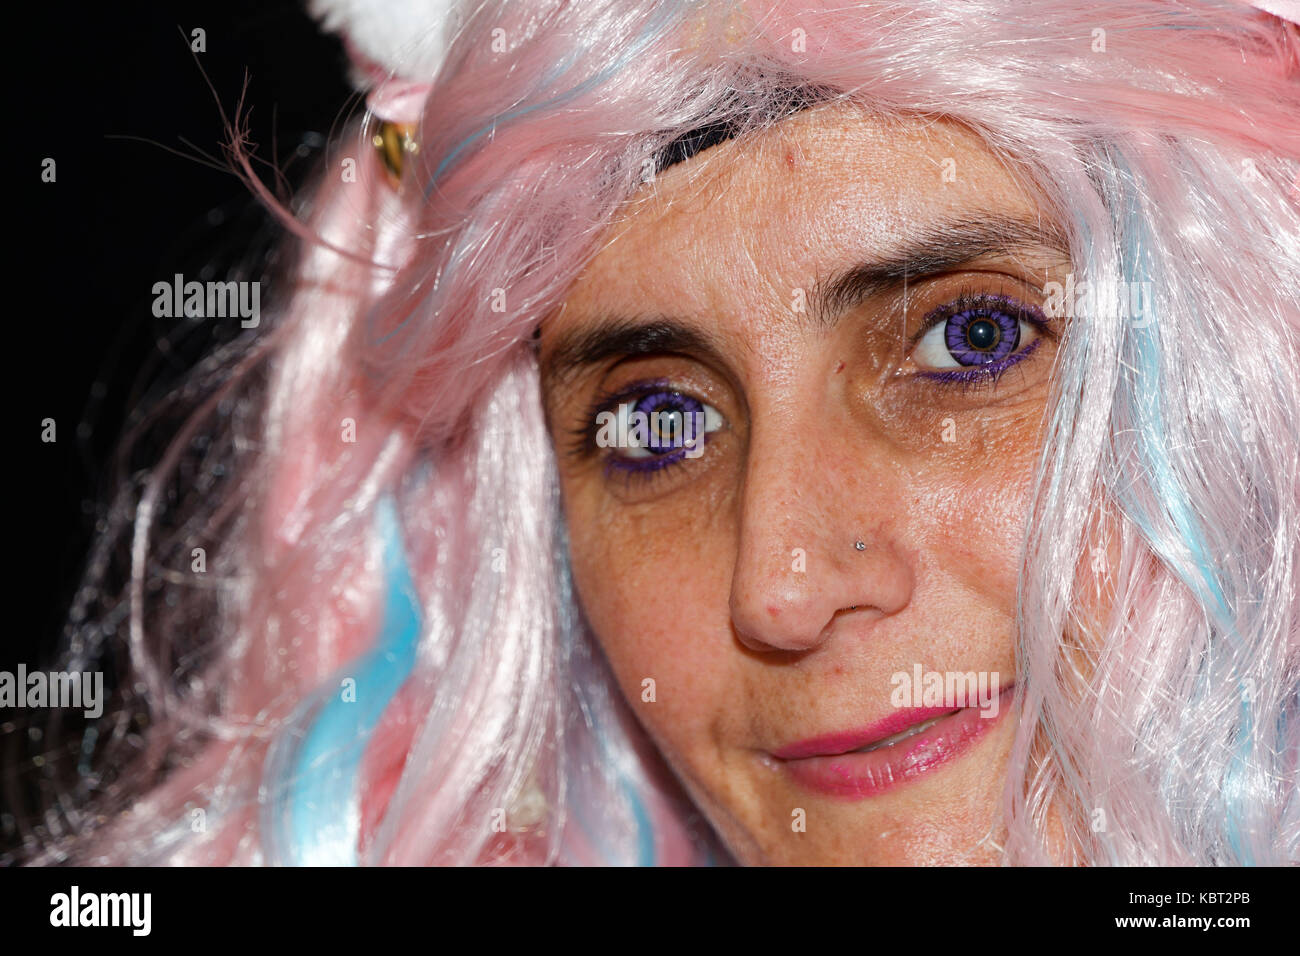 Paris, France, 30th Sep 2017. Portrait of Cosplay fan during the 24th édition Paris Manga Sci-Fi Show. Credit: - Stock Image